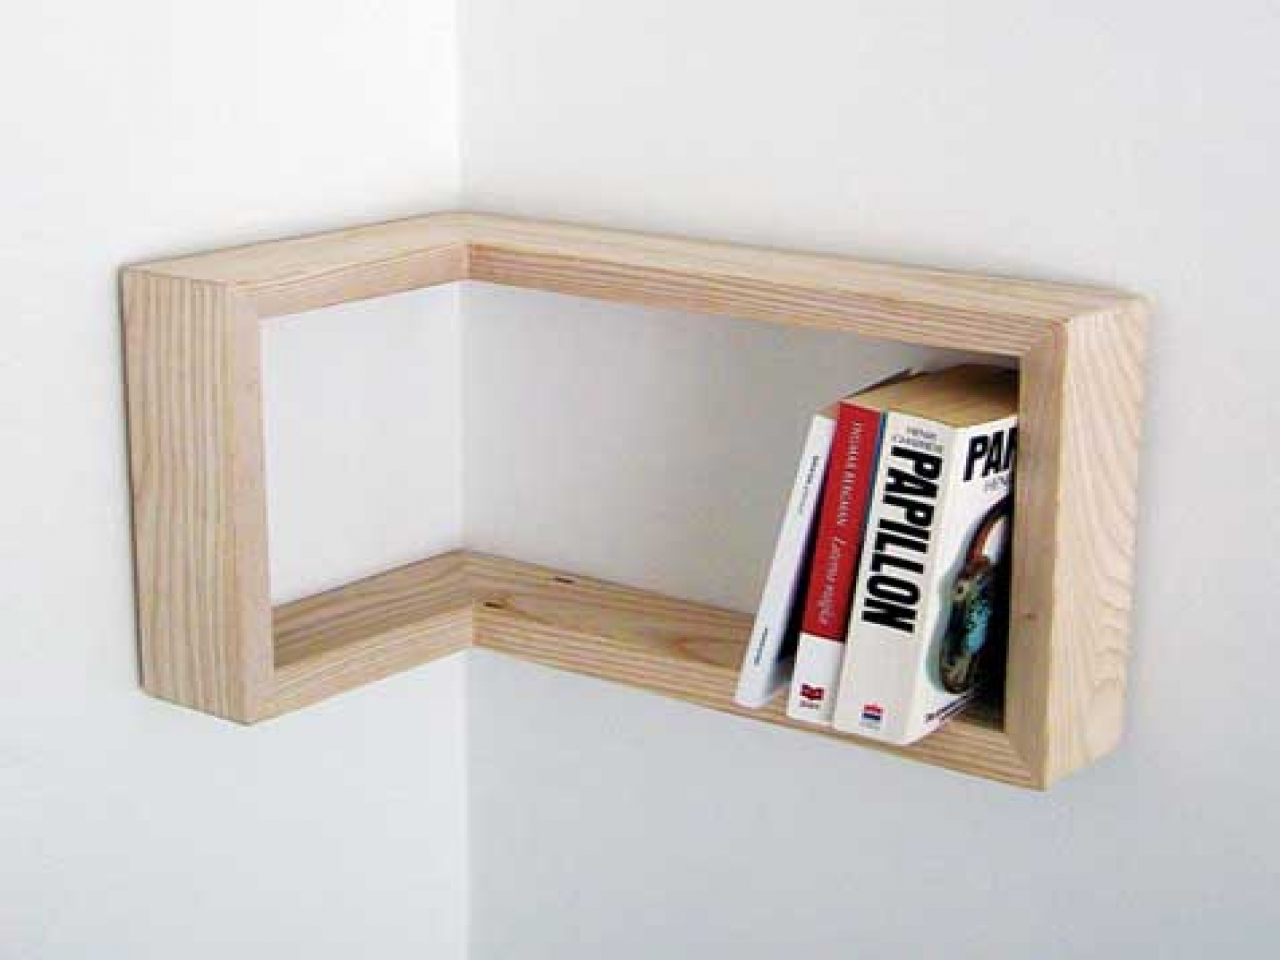 Design Corner Bookshelf 15 ways to diy creative corner shelves